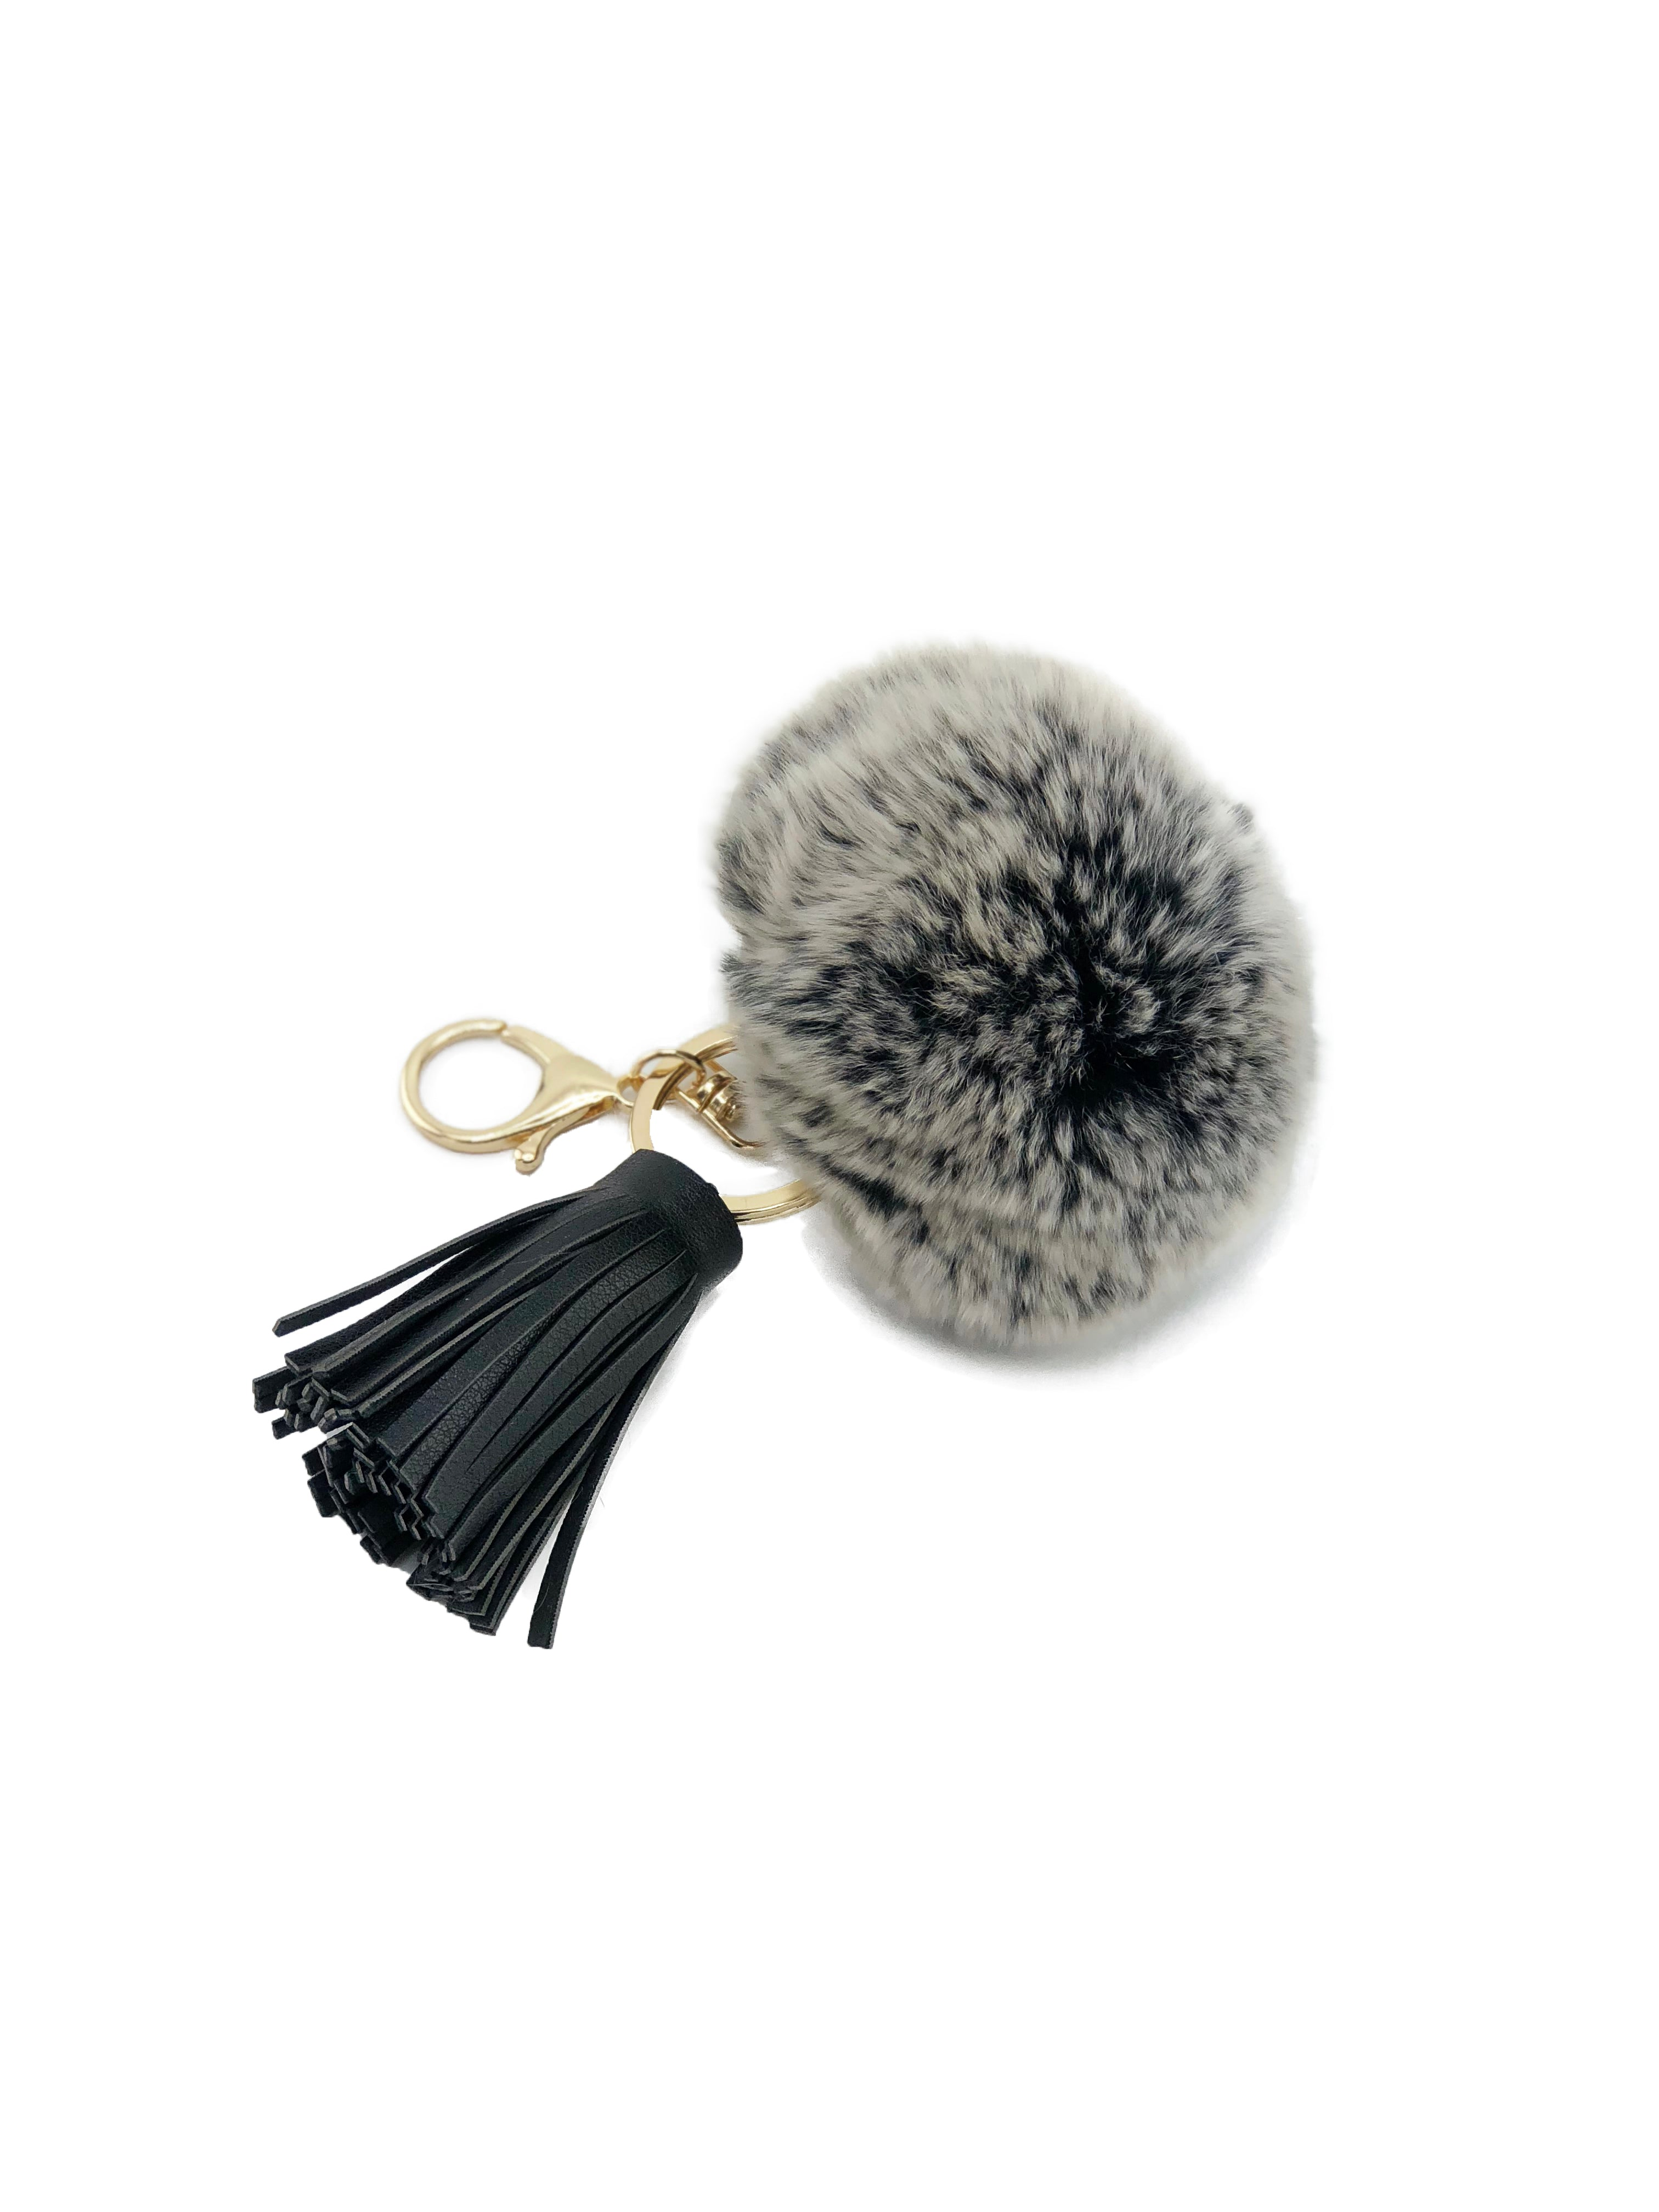 Rex Rabbit Pom Keychain with Leather Tassels - paulamariecollection